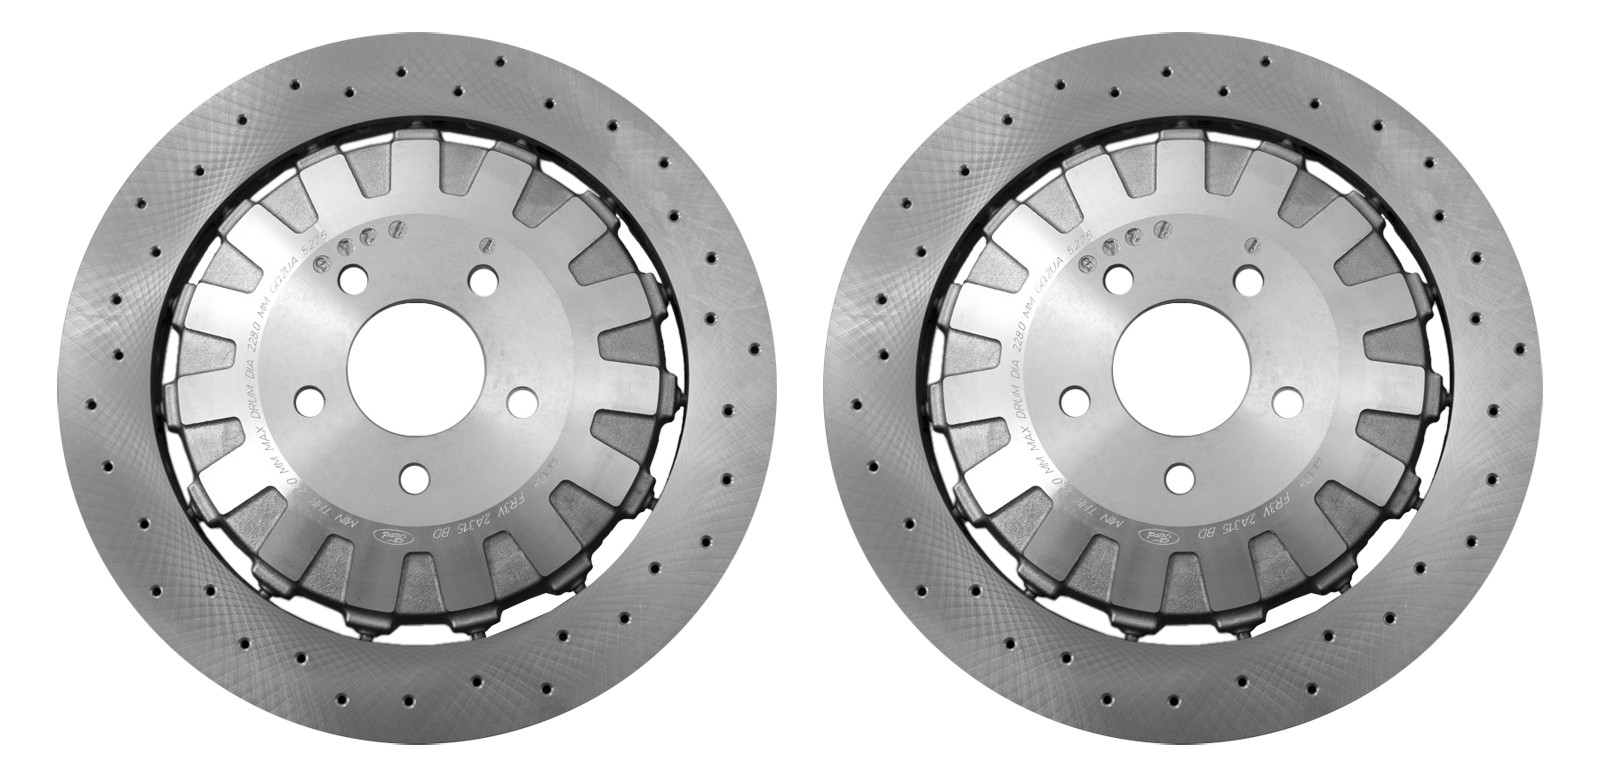 2016-2017 Mustang Shelby GT350 Genuine Ford Rear Brake Rotors - Pair LH & RH